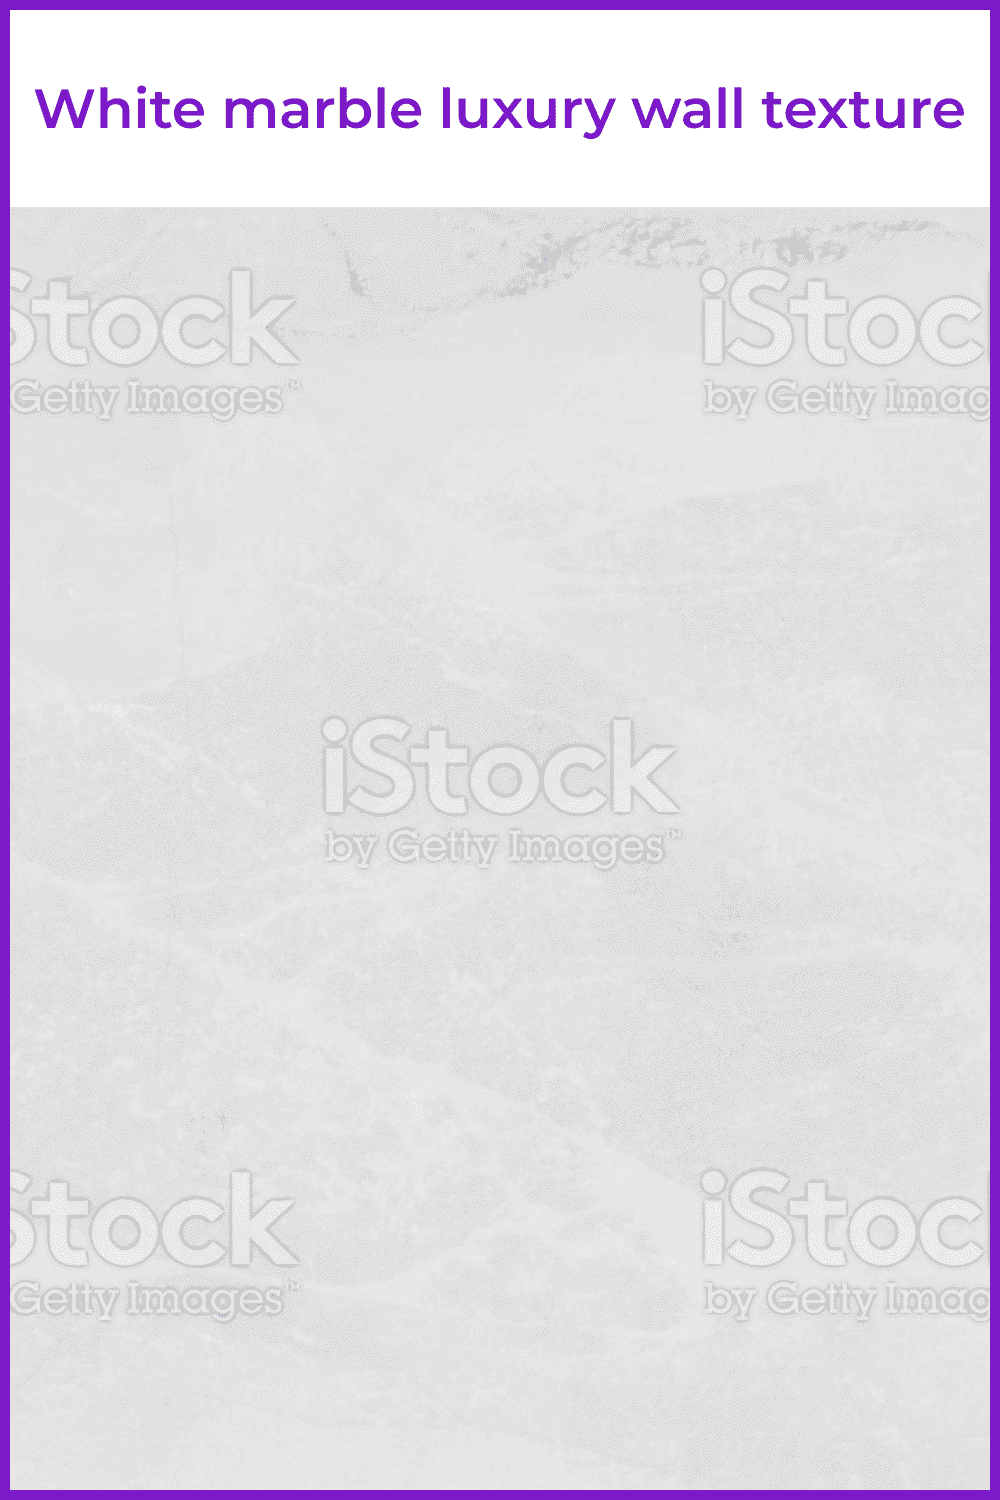 White marble luxury wall texture.